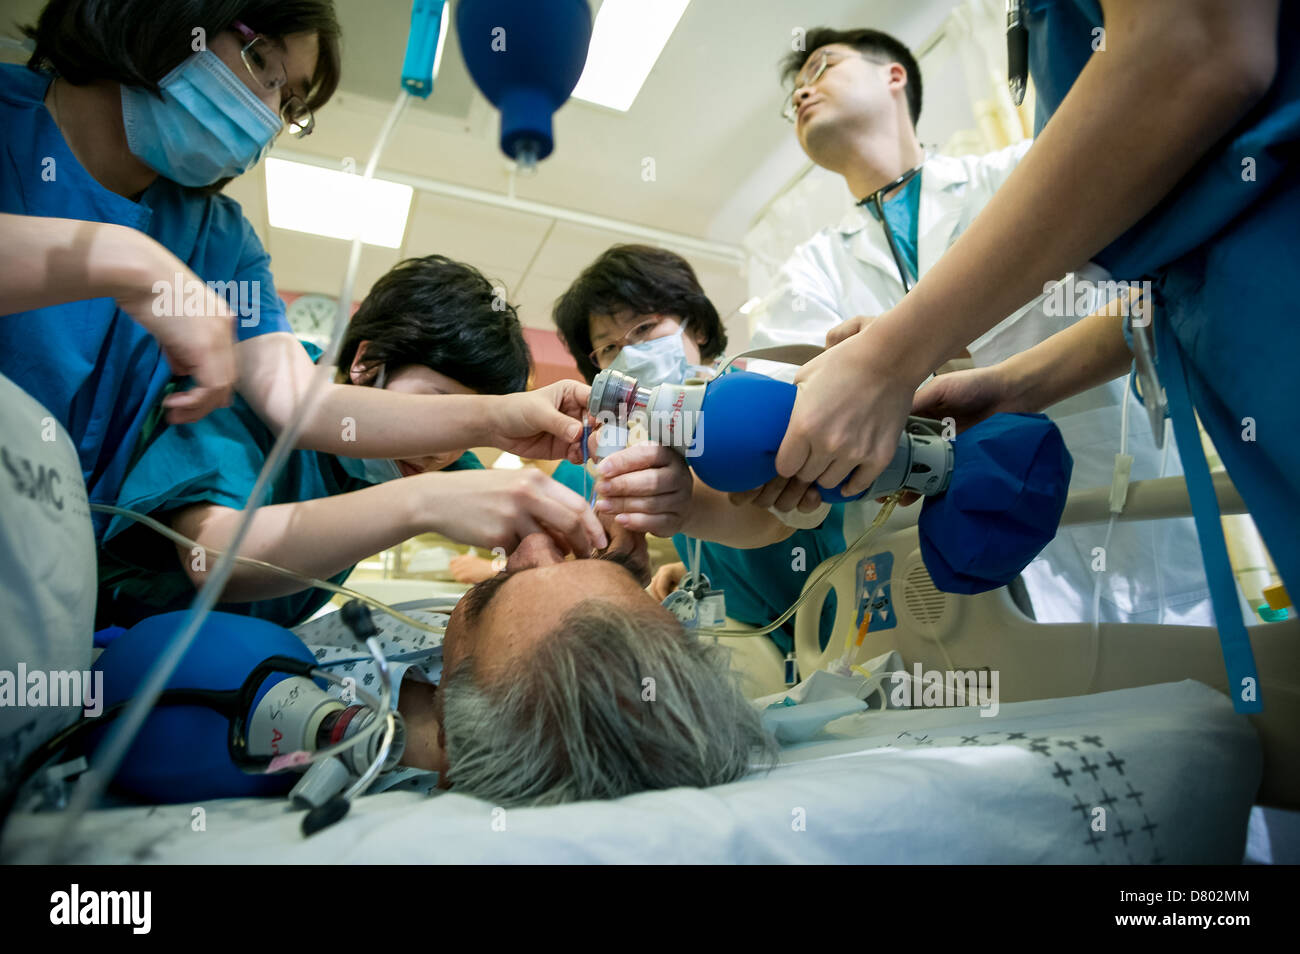 Medical staff use an oxygen tank to help revive the patient who has been under anaesthetic at the intensive care Stock Photo